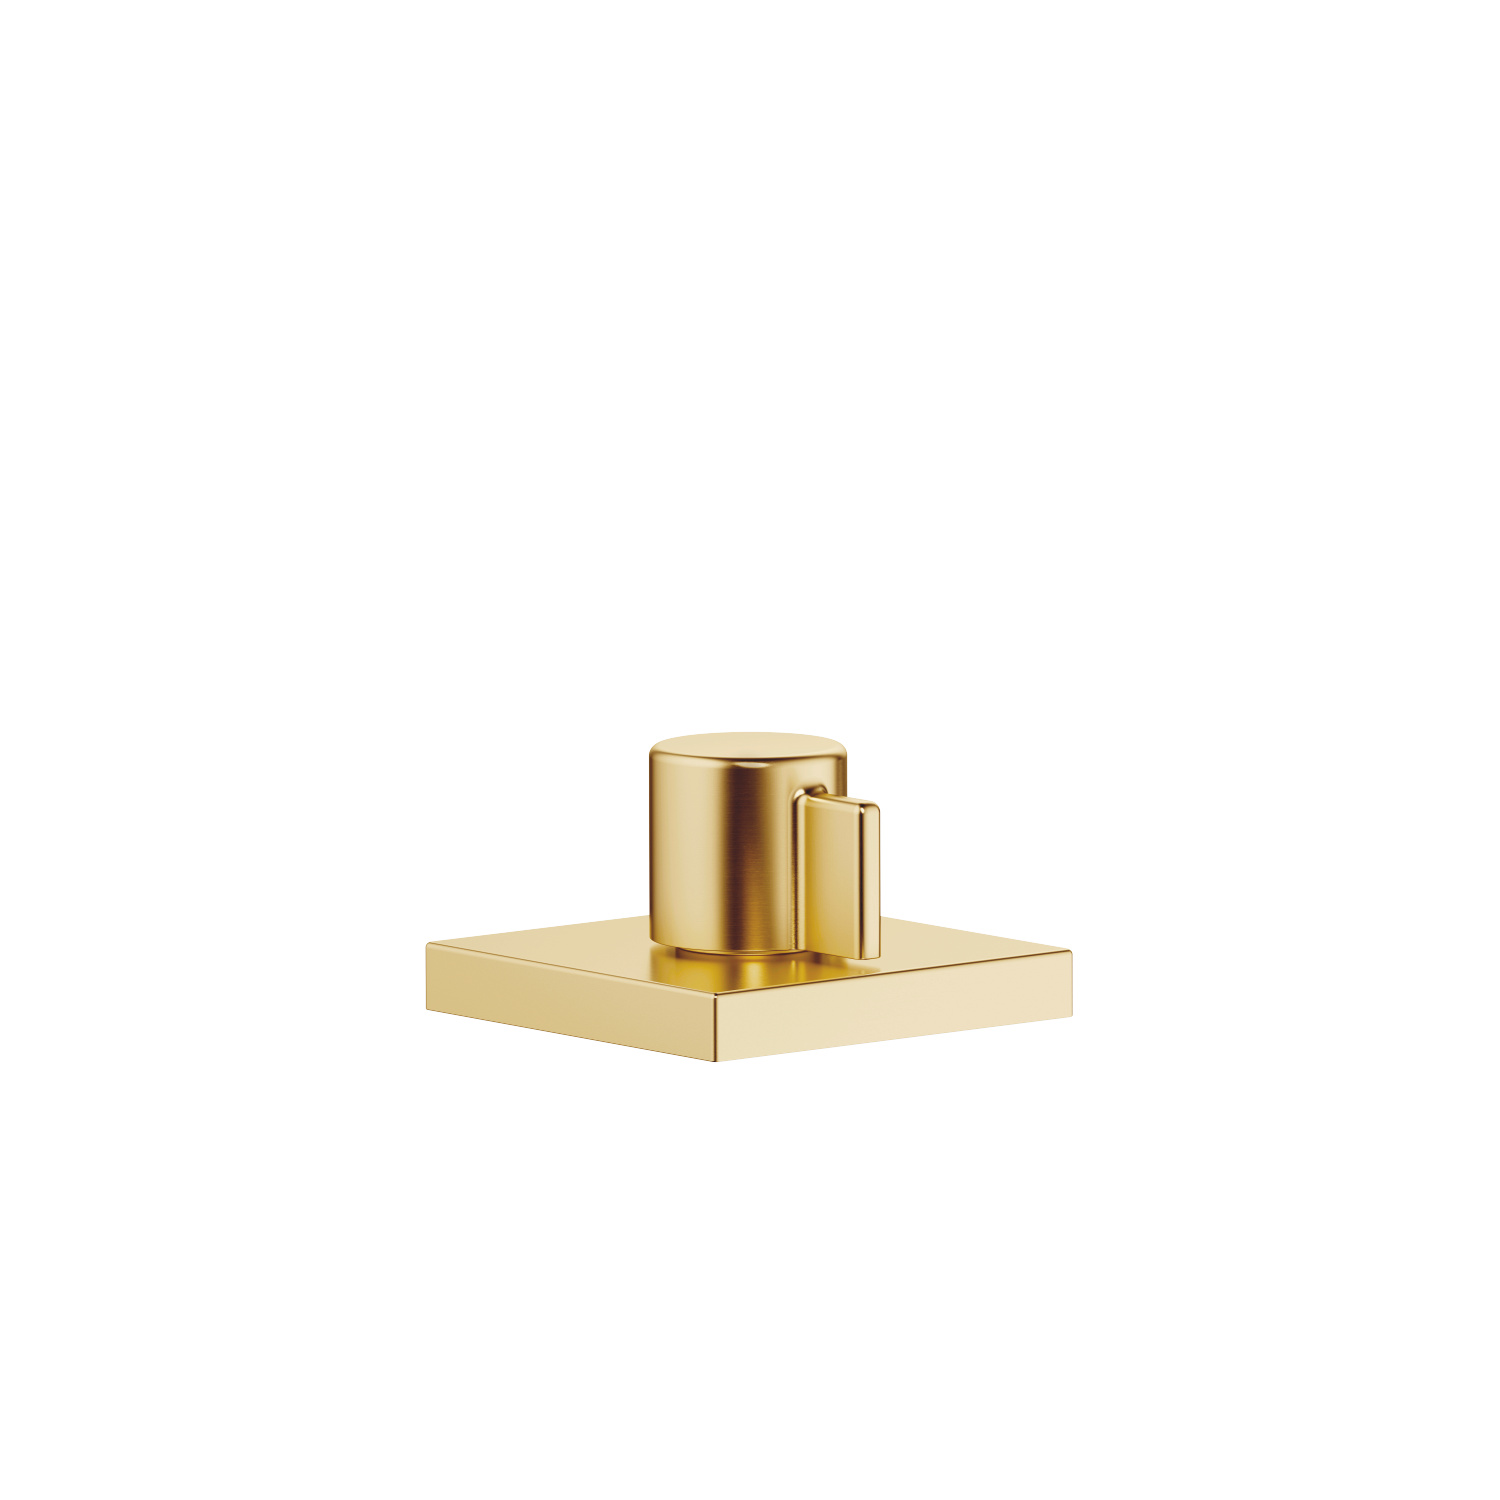 Deck valve anti-clockwise closing hot - brushed Durabrass